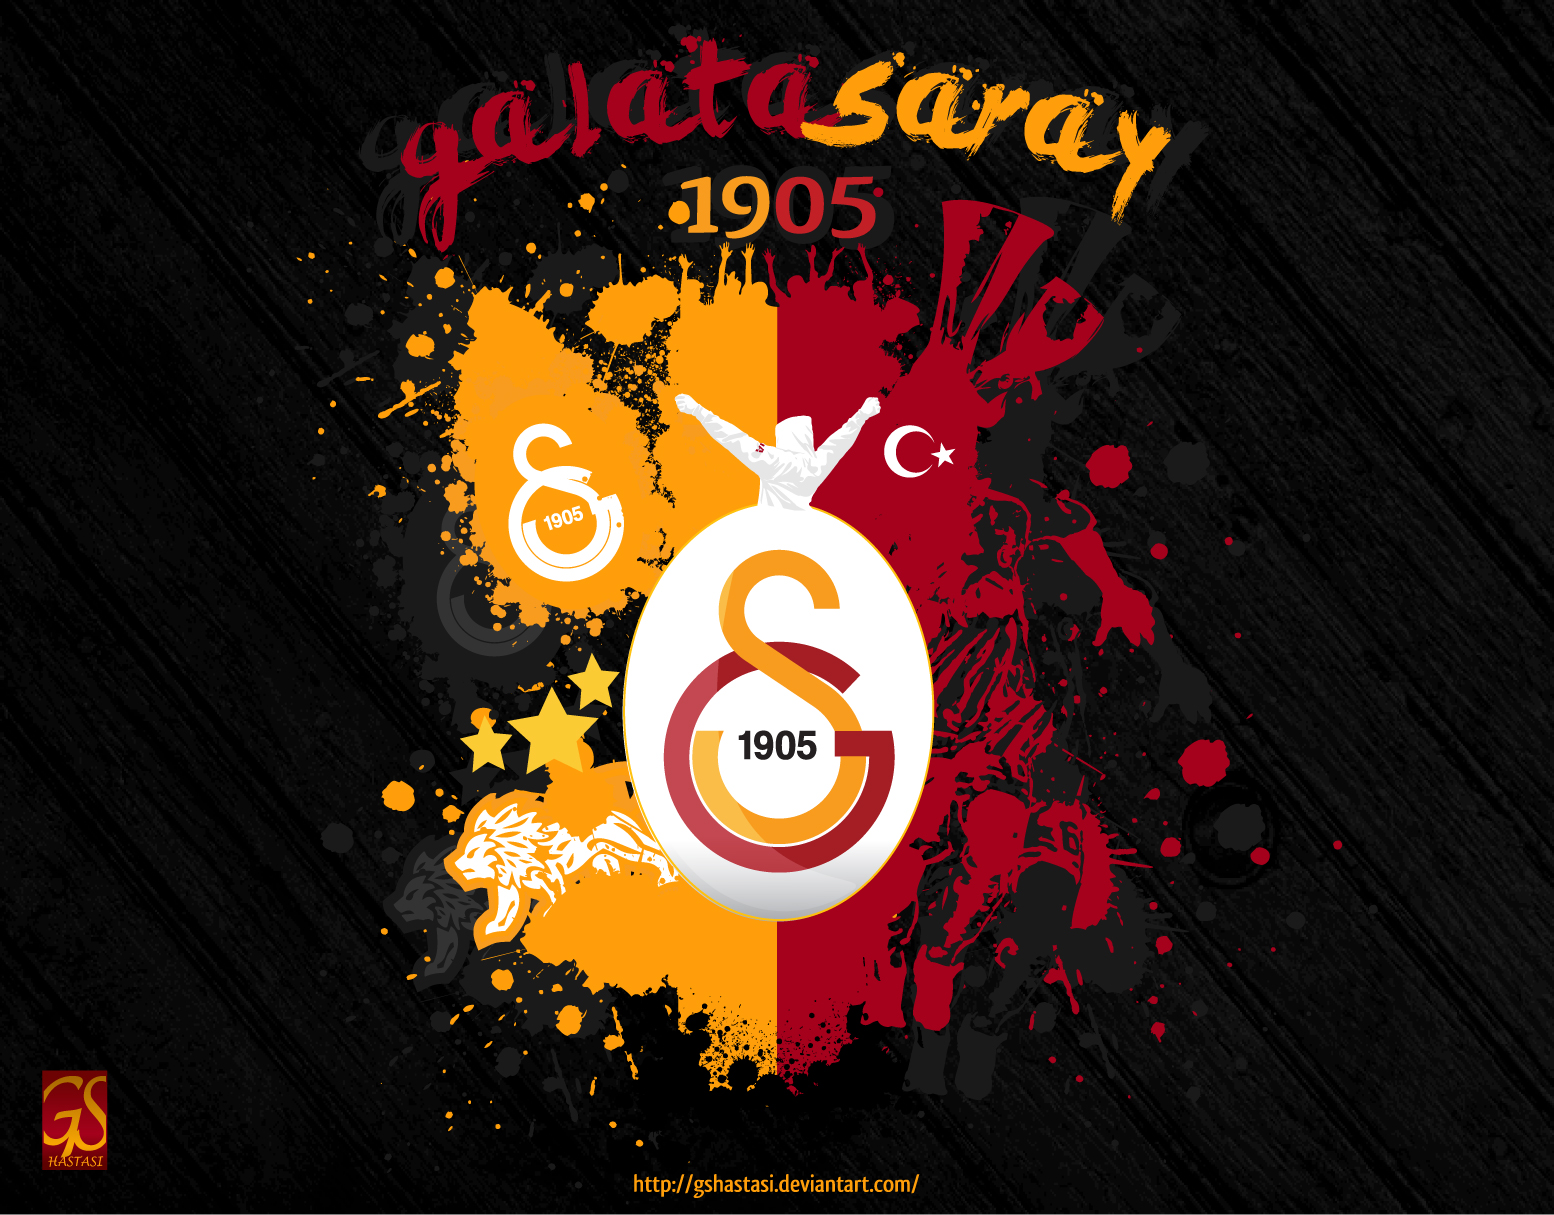 Download image Wallpaper Galatasaray Logo Res Mler PC, Android, iPhone ...